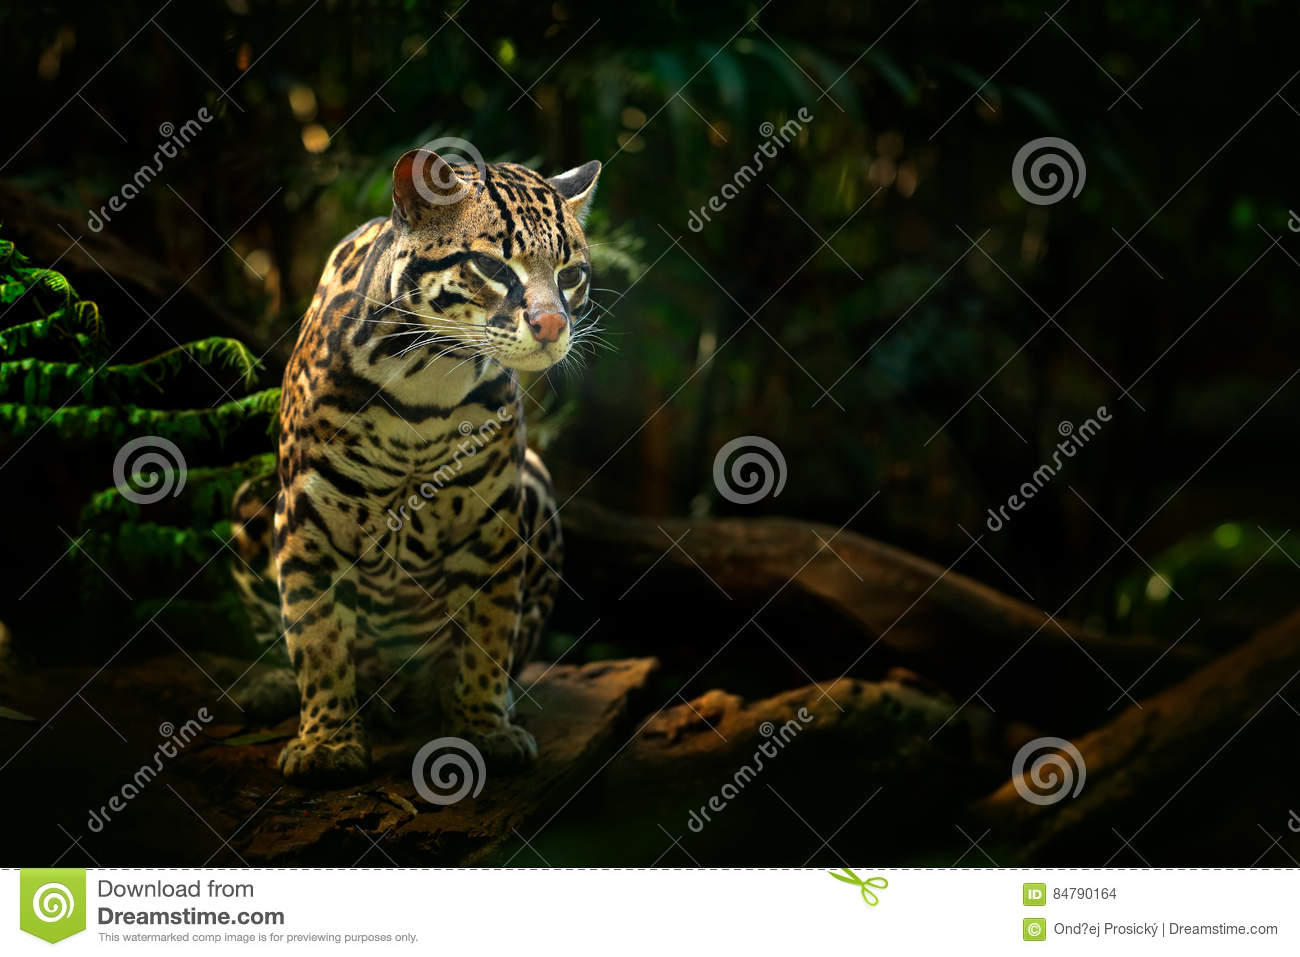 Animais selvagens em Costa Rica Assento margay do gato agradável no ramo no retrato tropical costarican do detalhe da floresta do